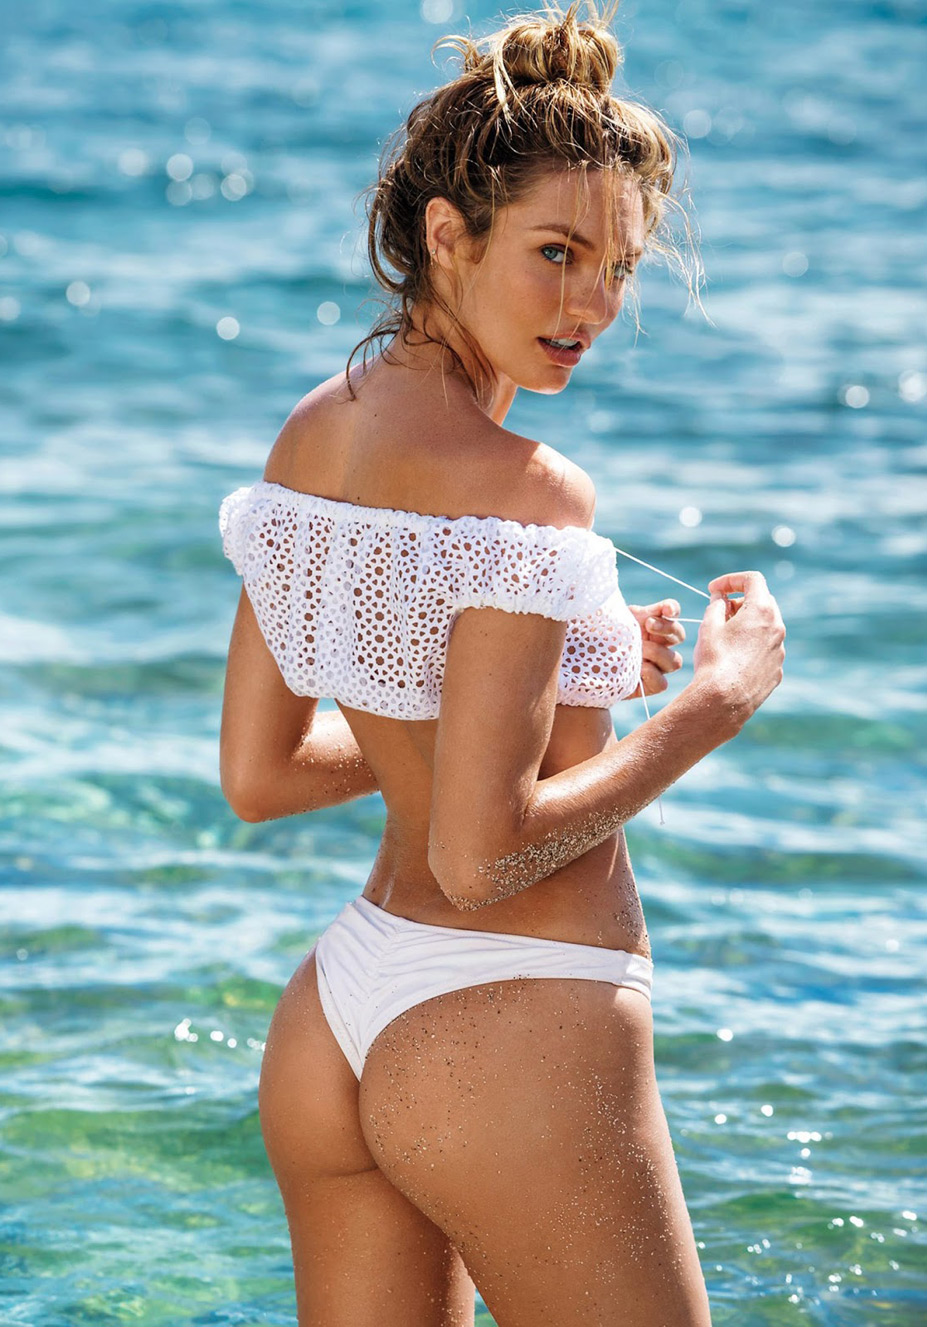 Кэндис Свейнпол / Candice Swanepoel by Gilles Bensimon in Maxim US march 2015